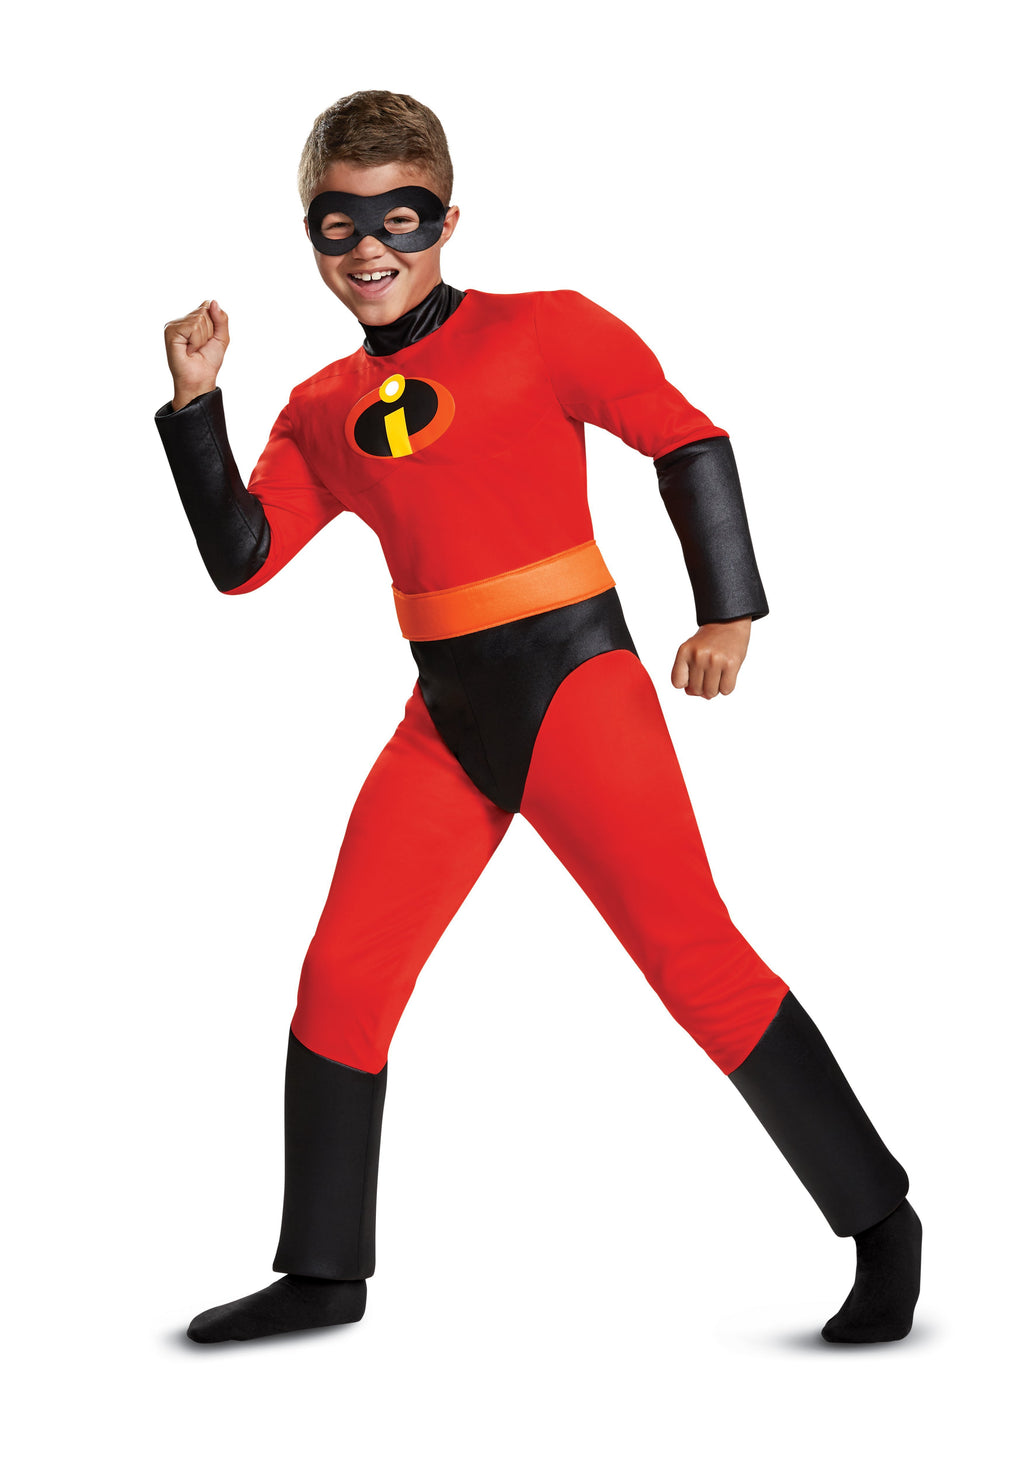 Disguise Costumes LARGE (10-12) Boys Dash Classic Costume - The Incredibles 2